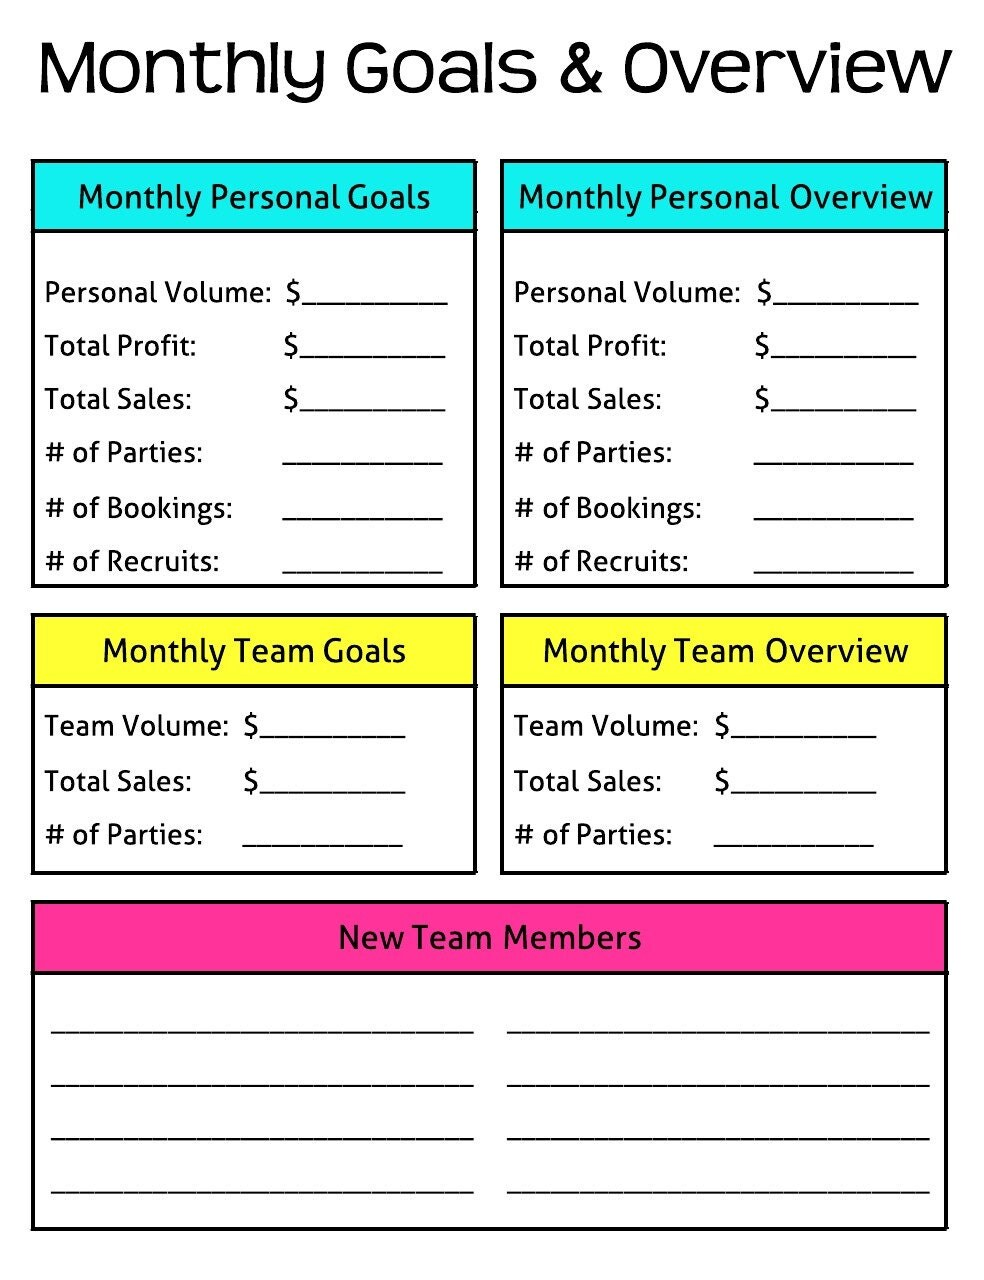 Universal image with monthly goals template